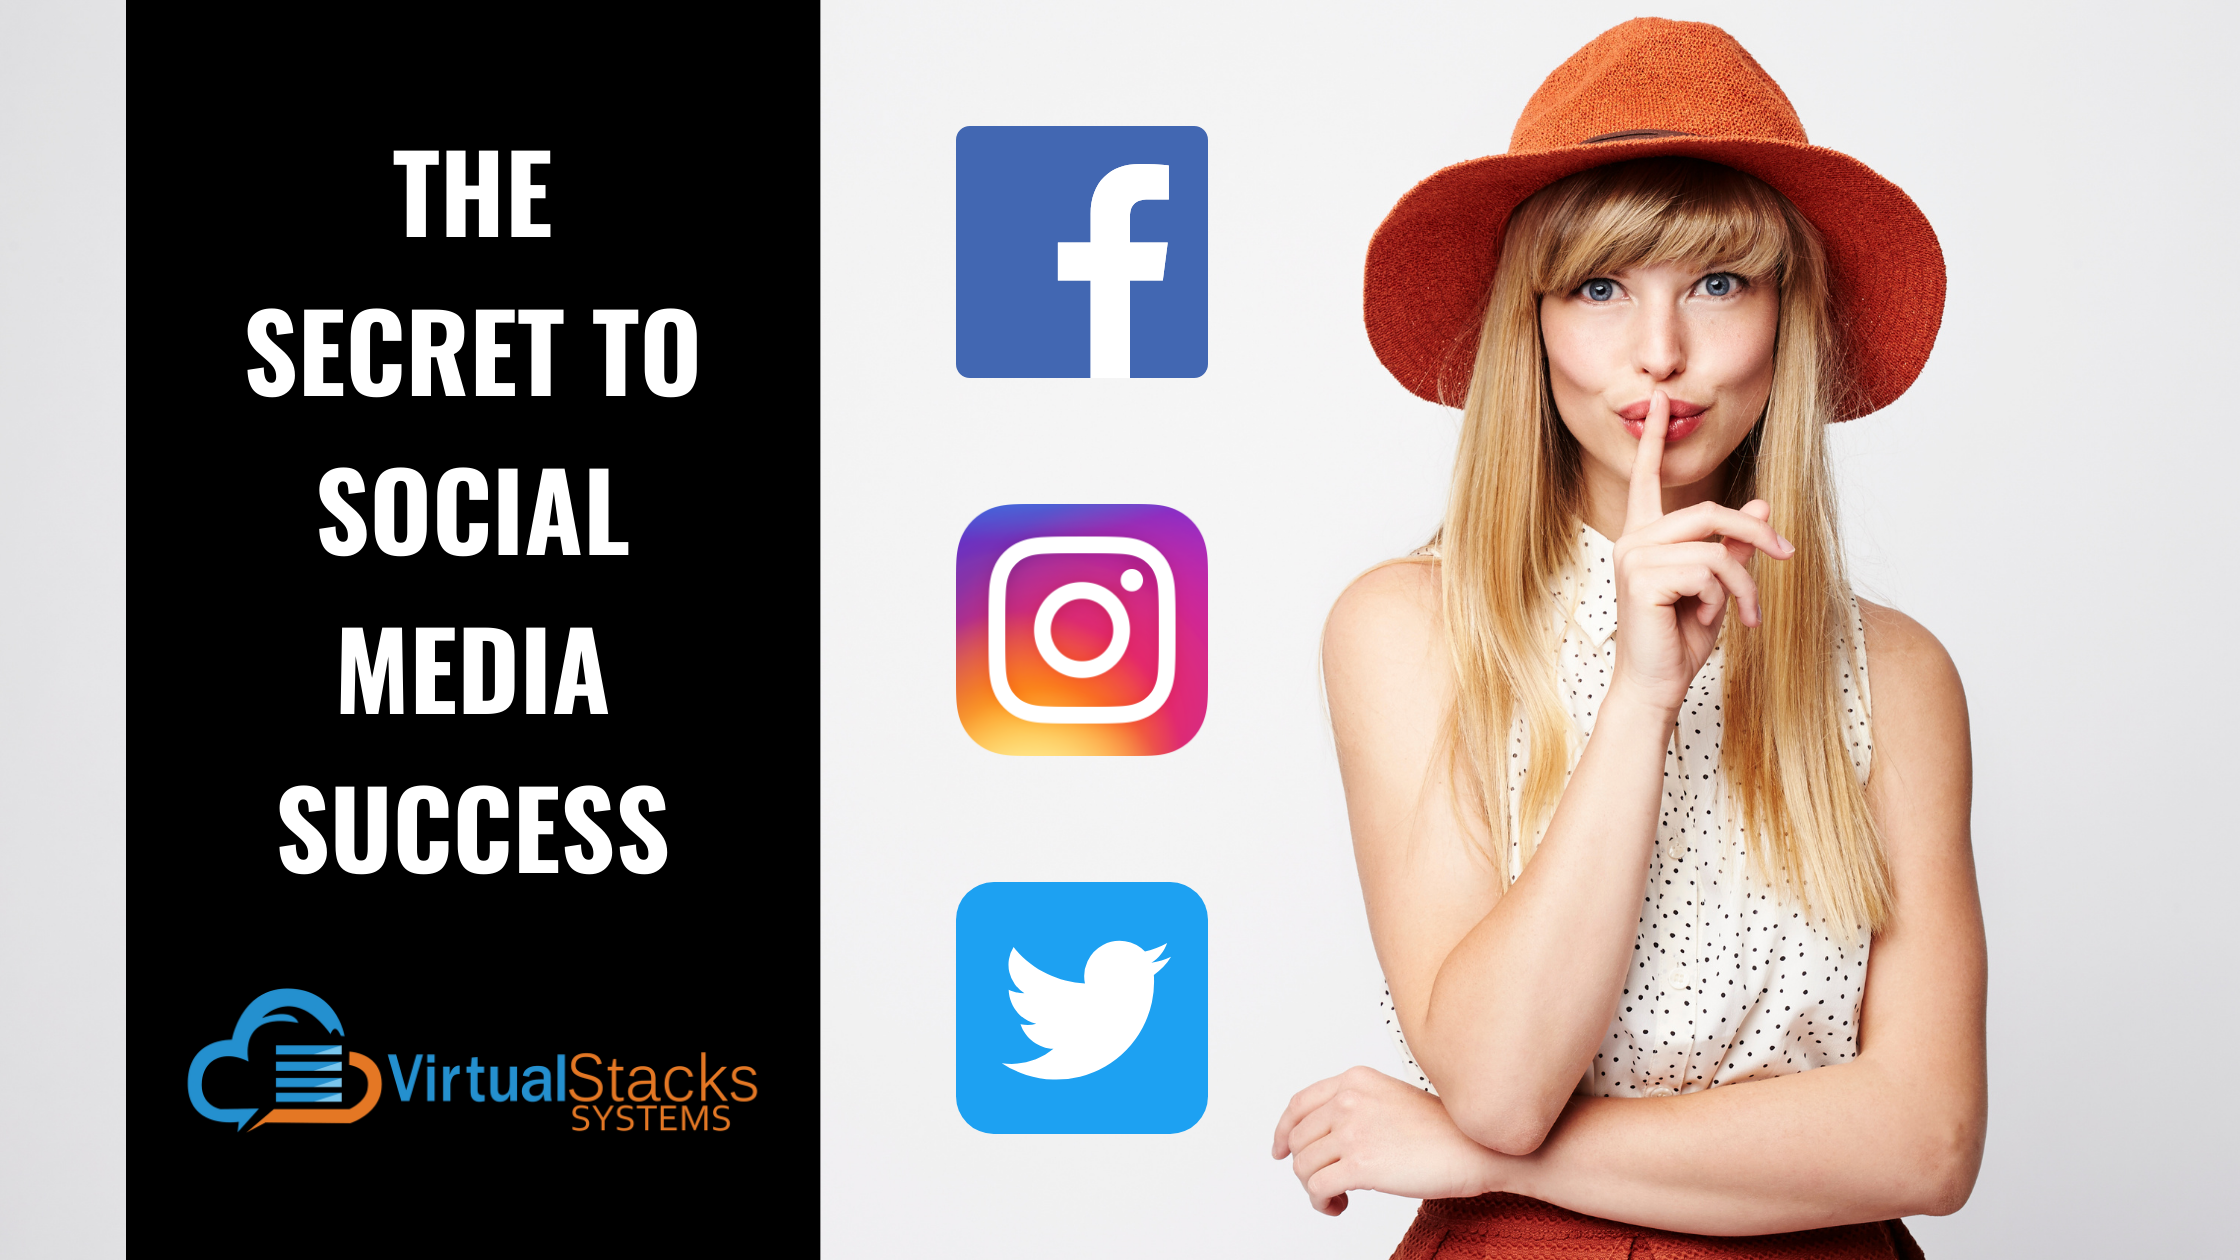 The Secret to Social Media Success